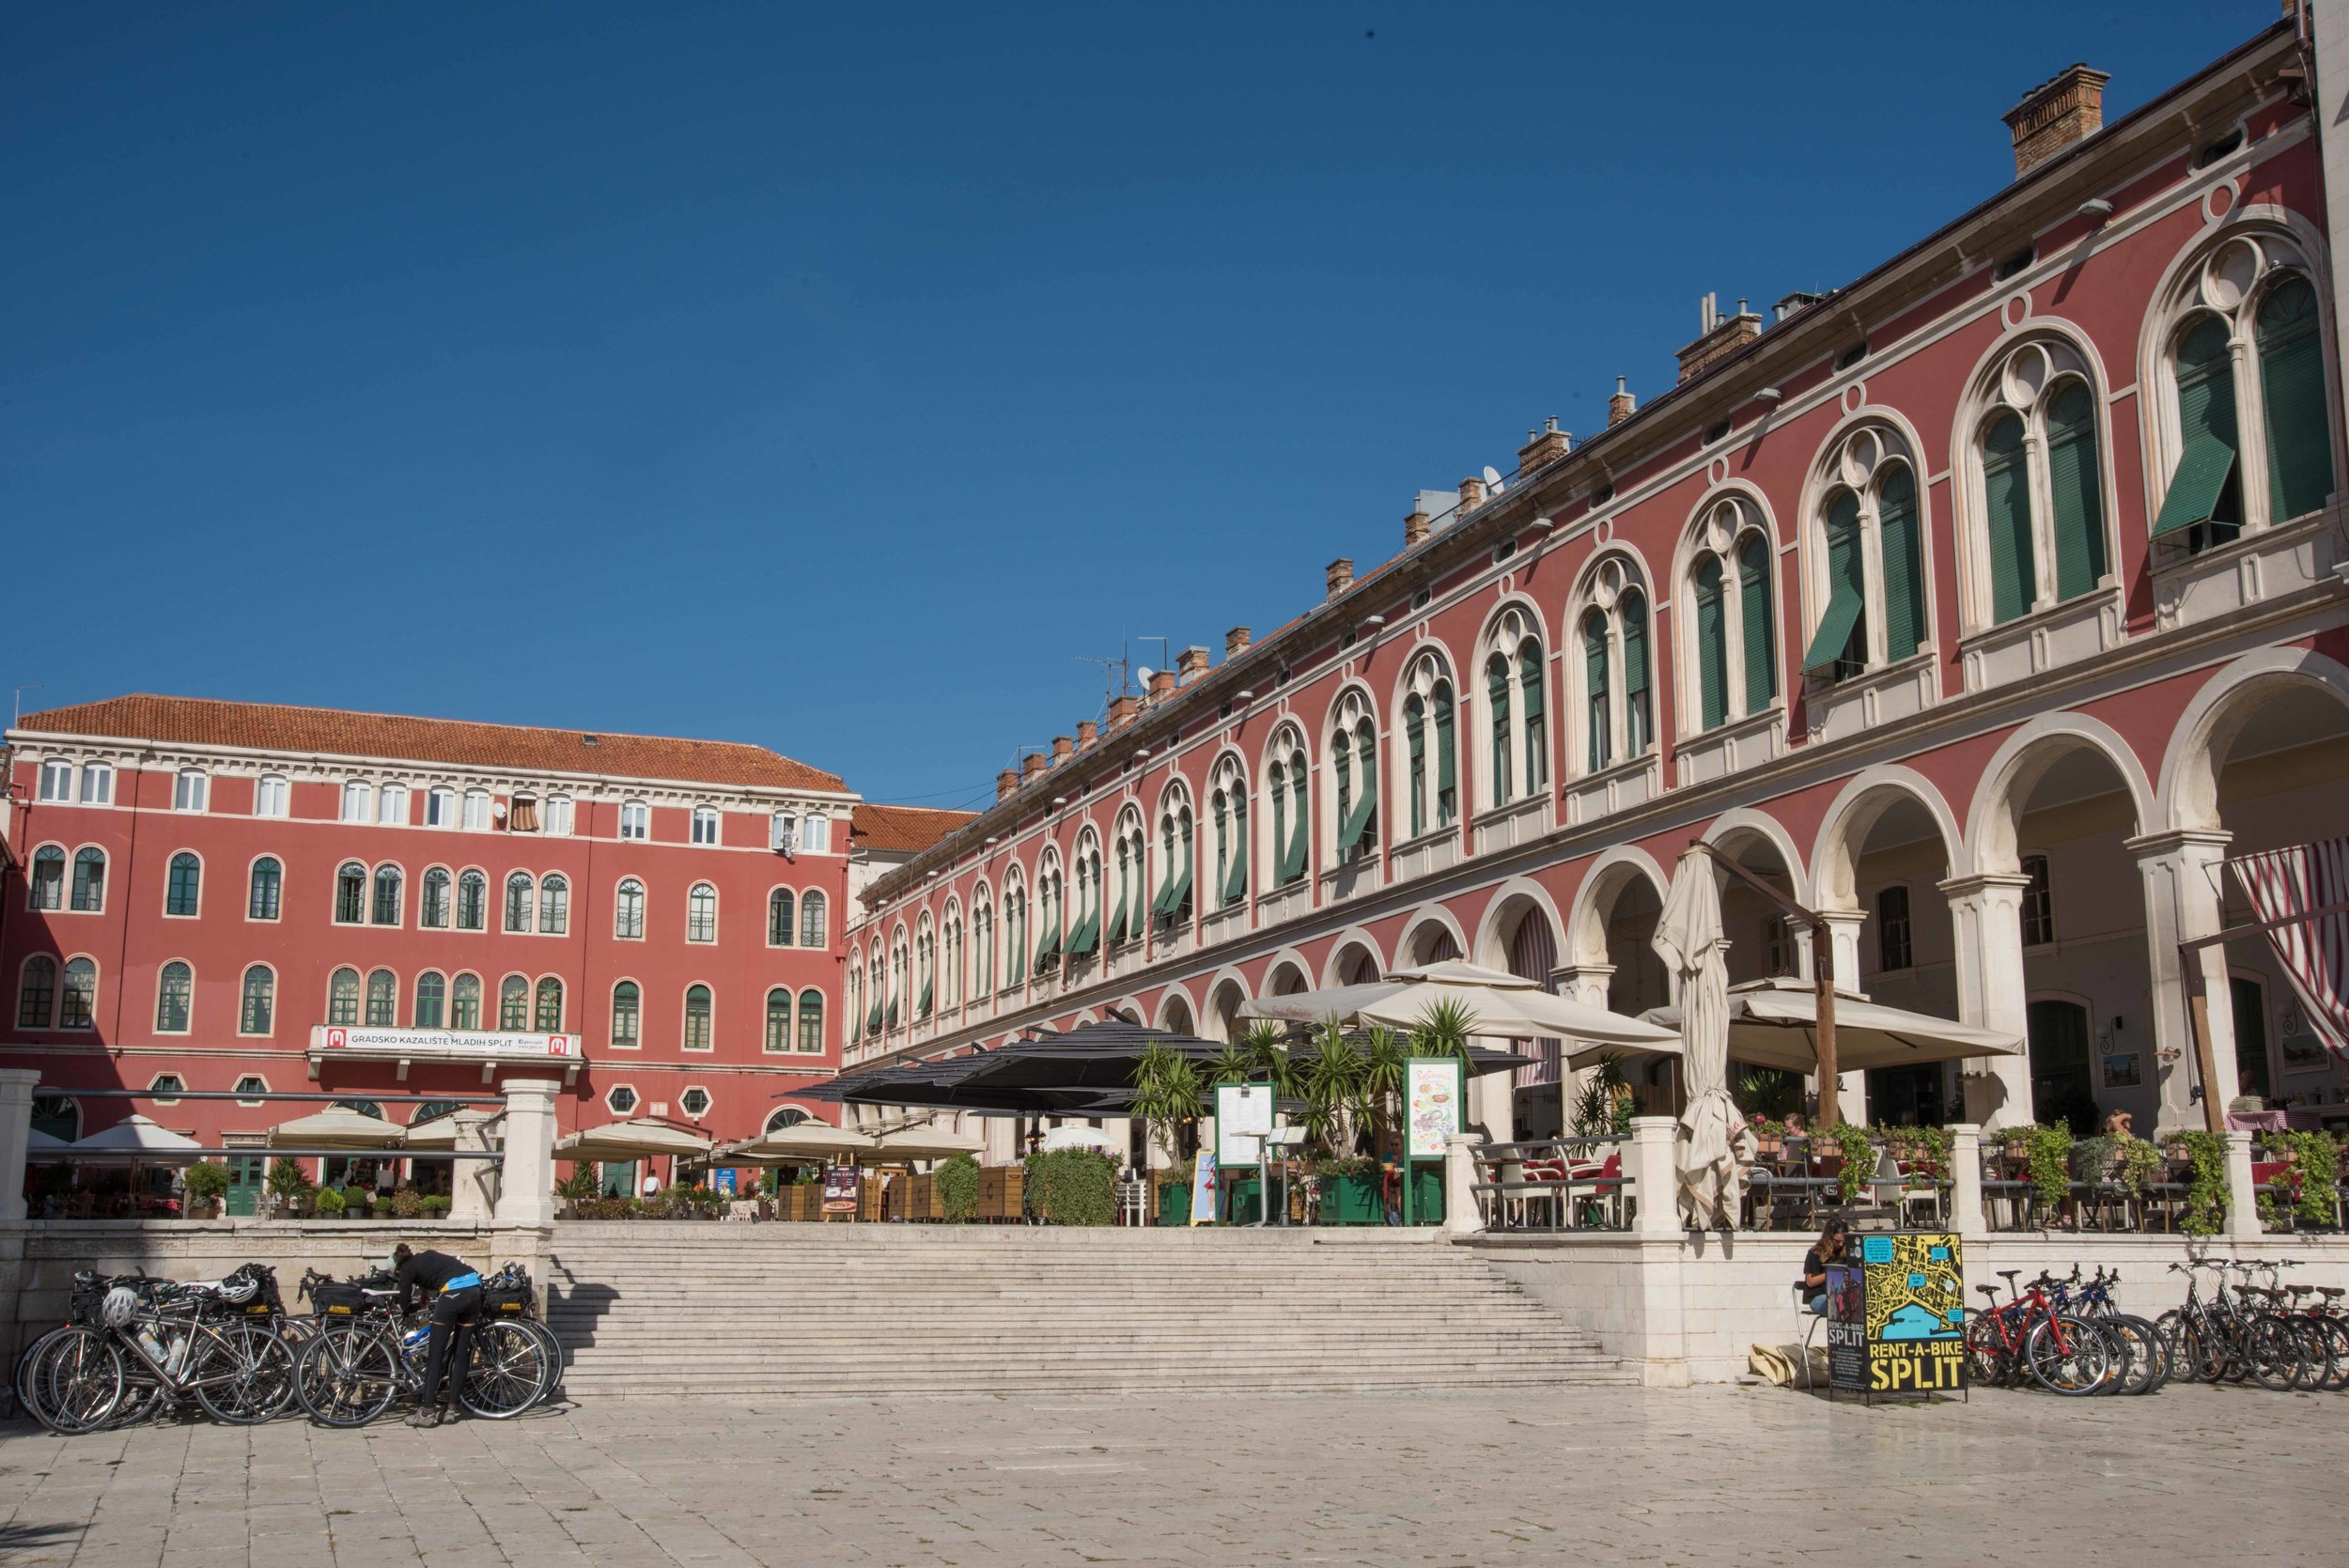 City Square, Split